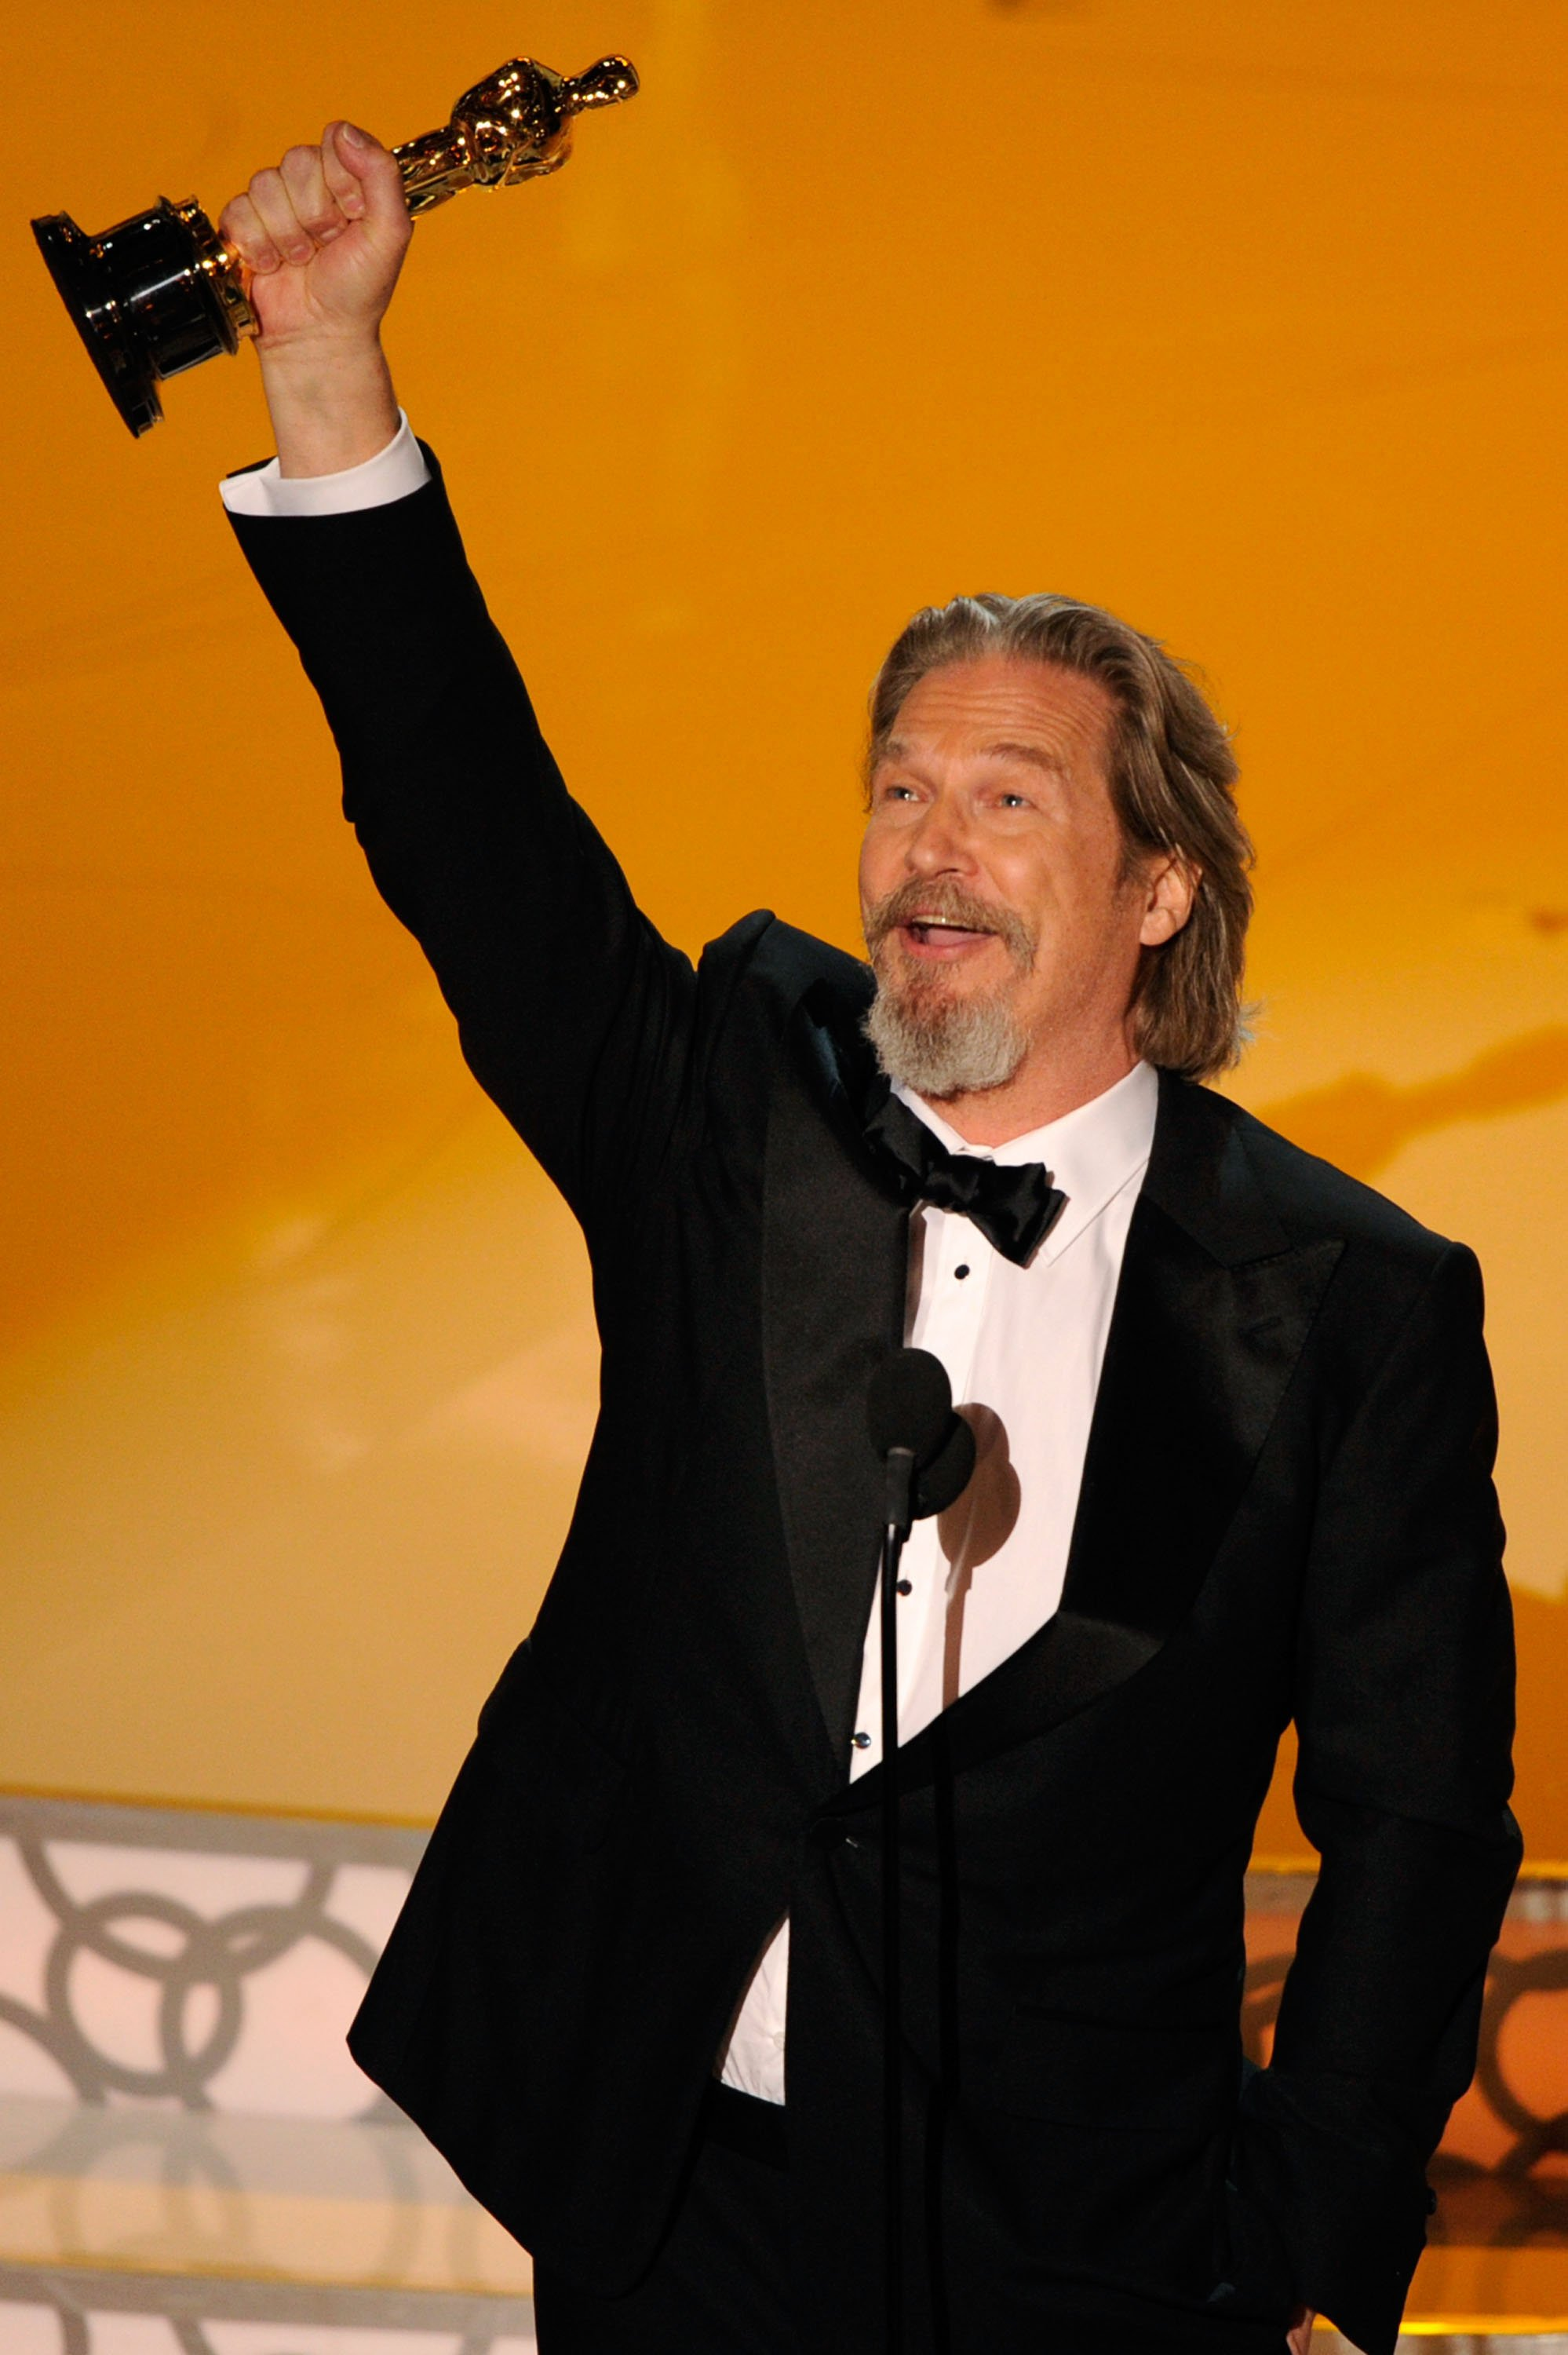 photos-quotes-best-actor-winner-jeff-bridges-2010-oscars-2010-oscars-press-room-2010-03-07-214000